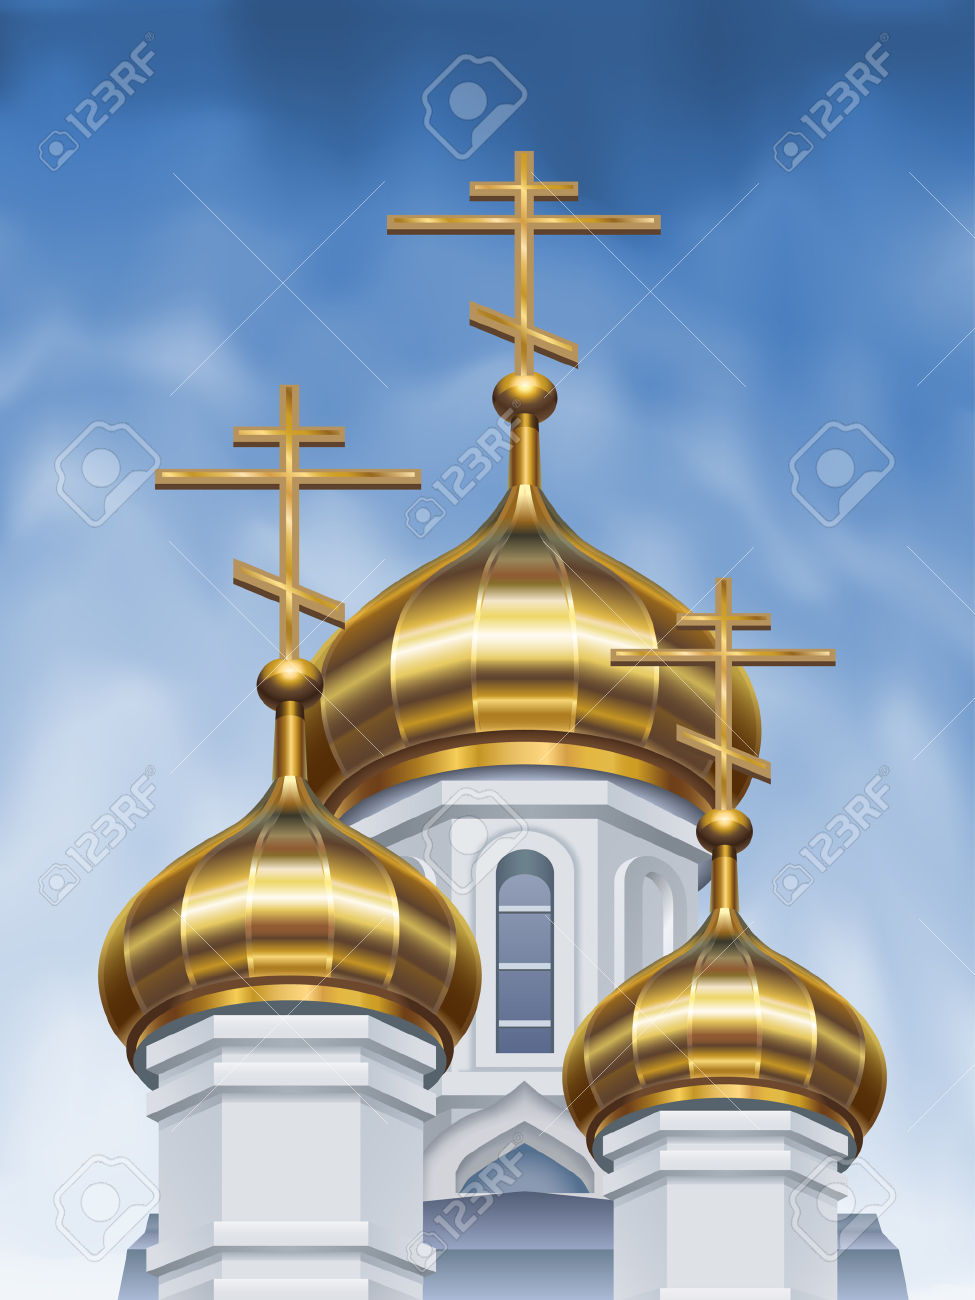 Russian Orthodox Church Cupolas Royalty Free Cliparts, Vectors.